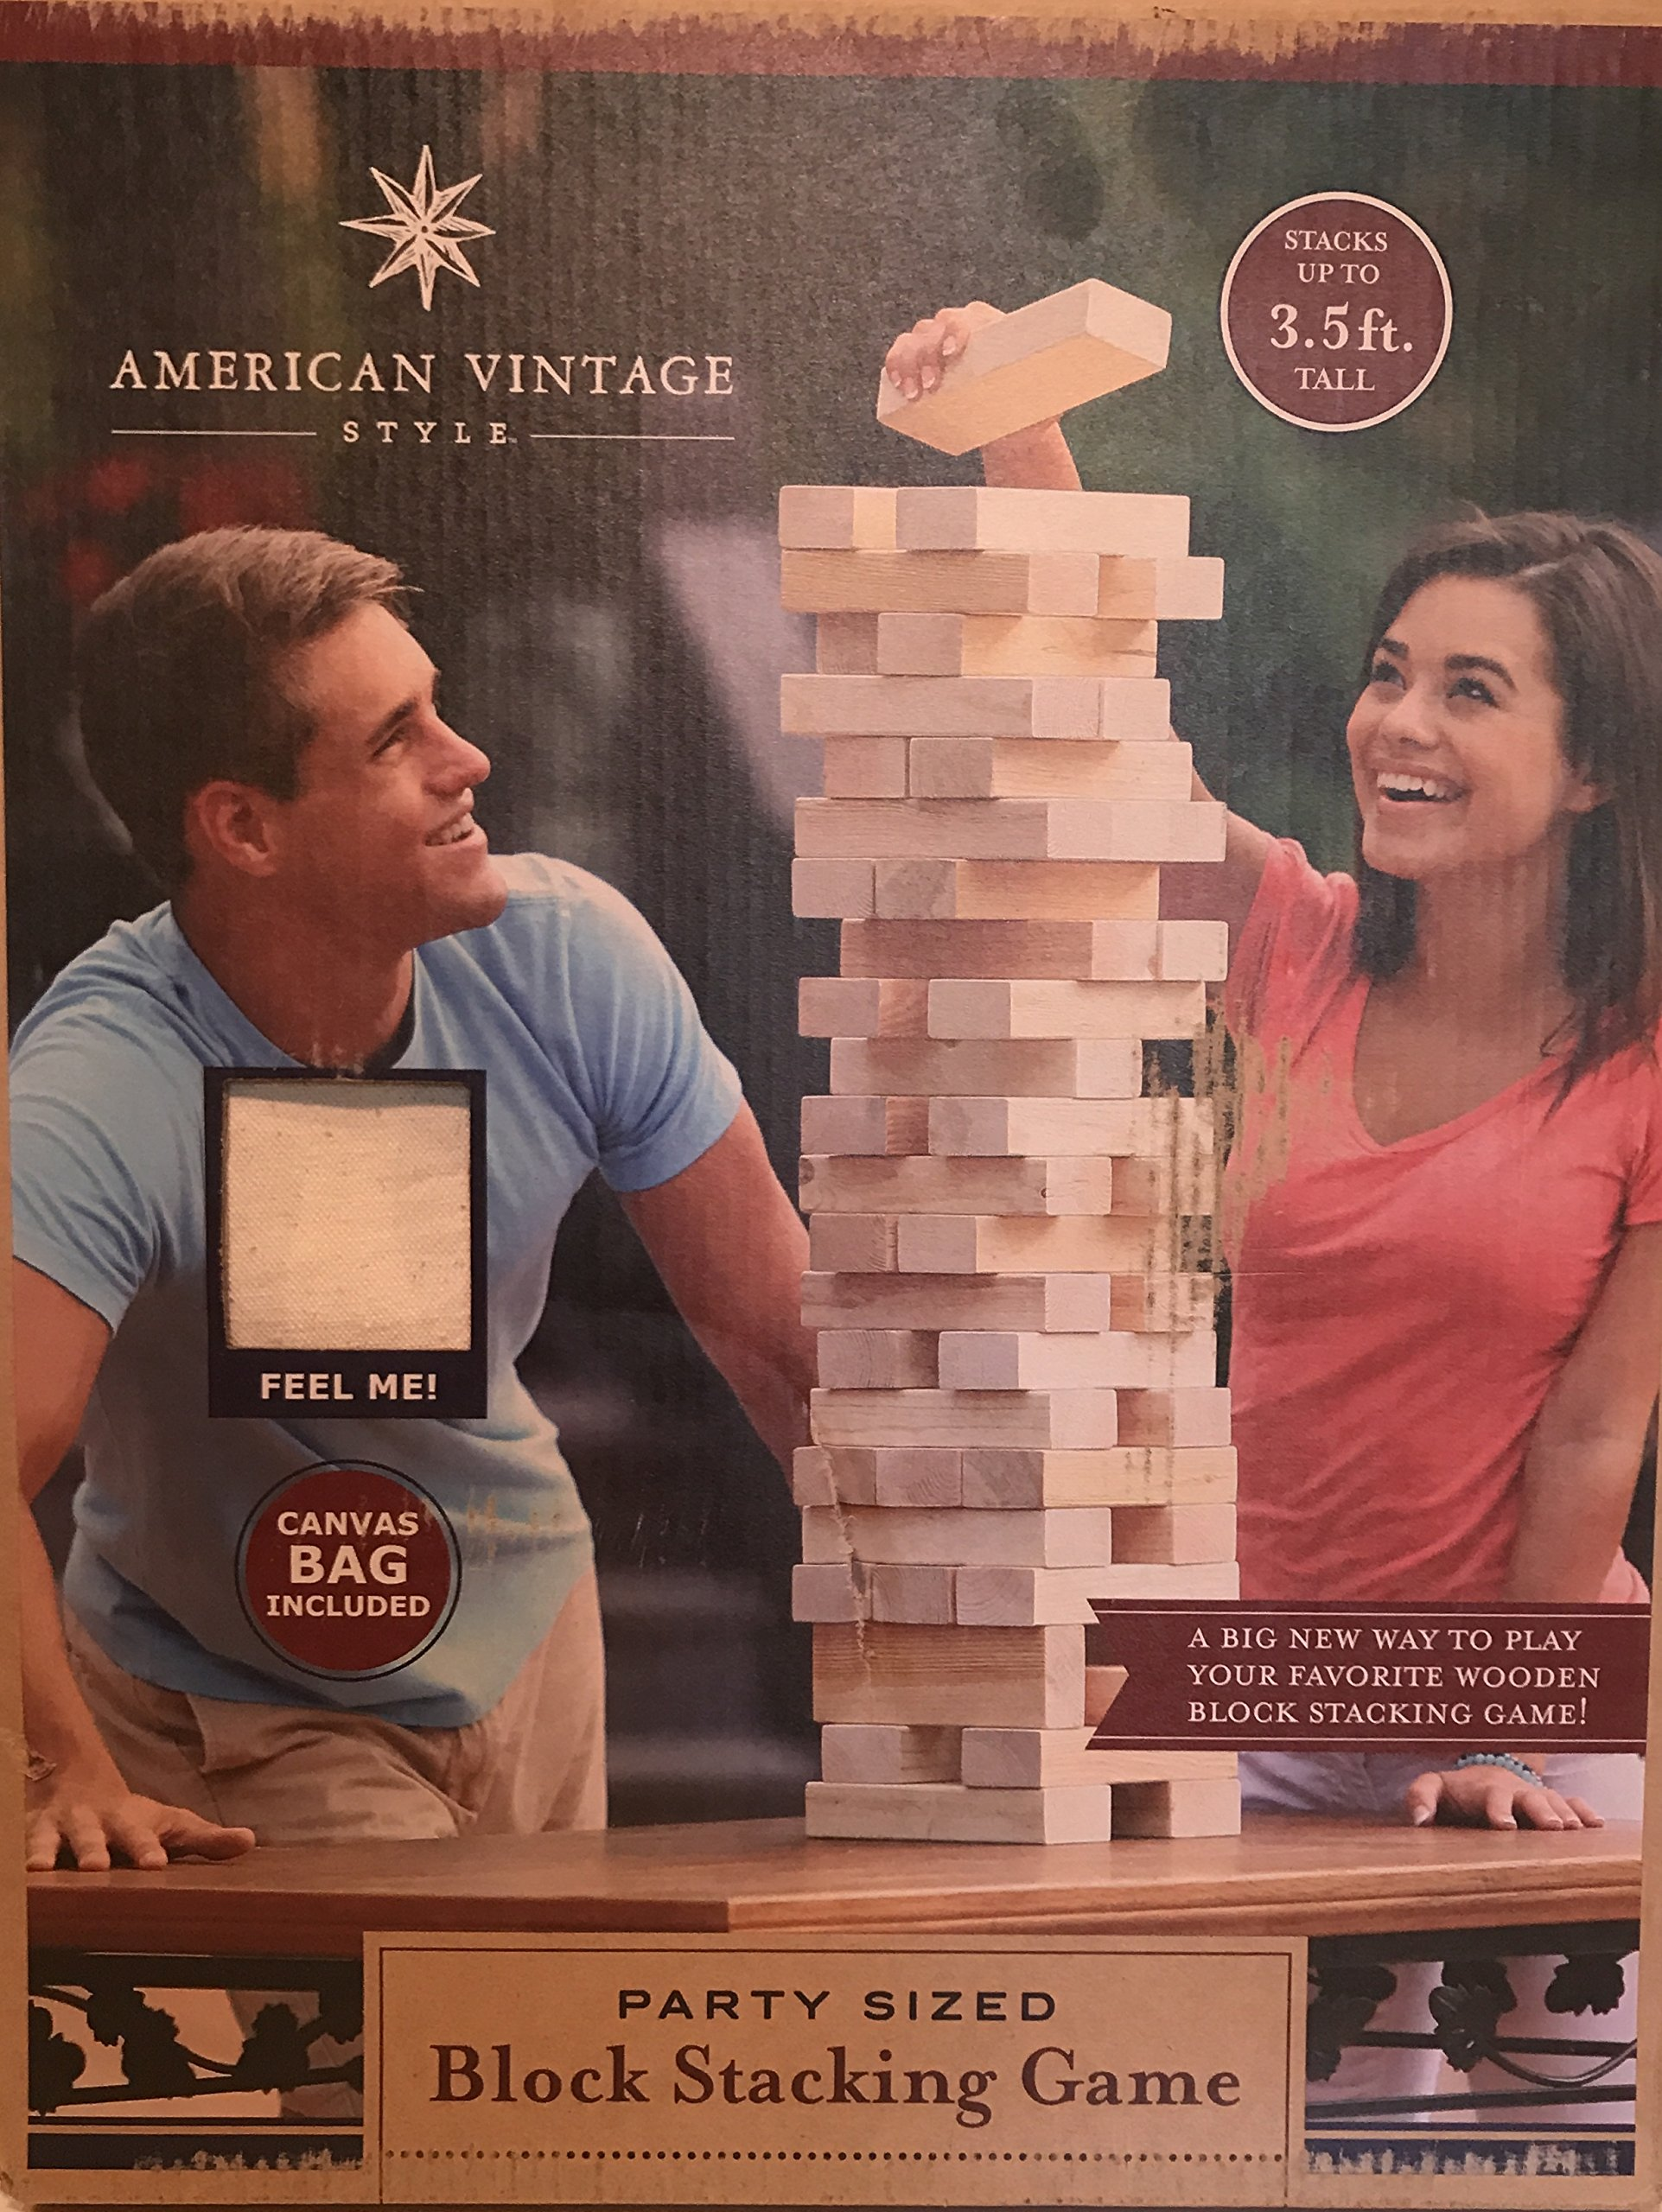 Party Sized Block Stacking Game